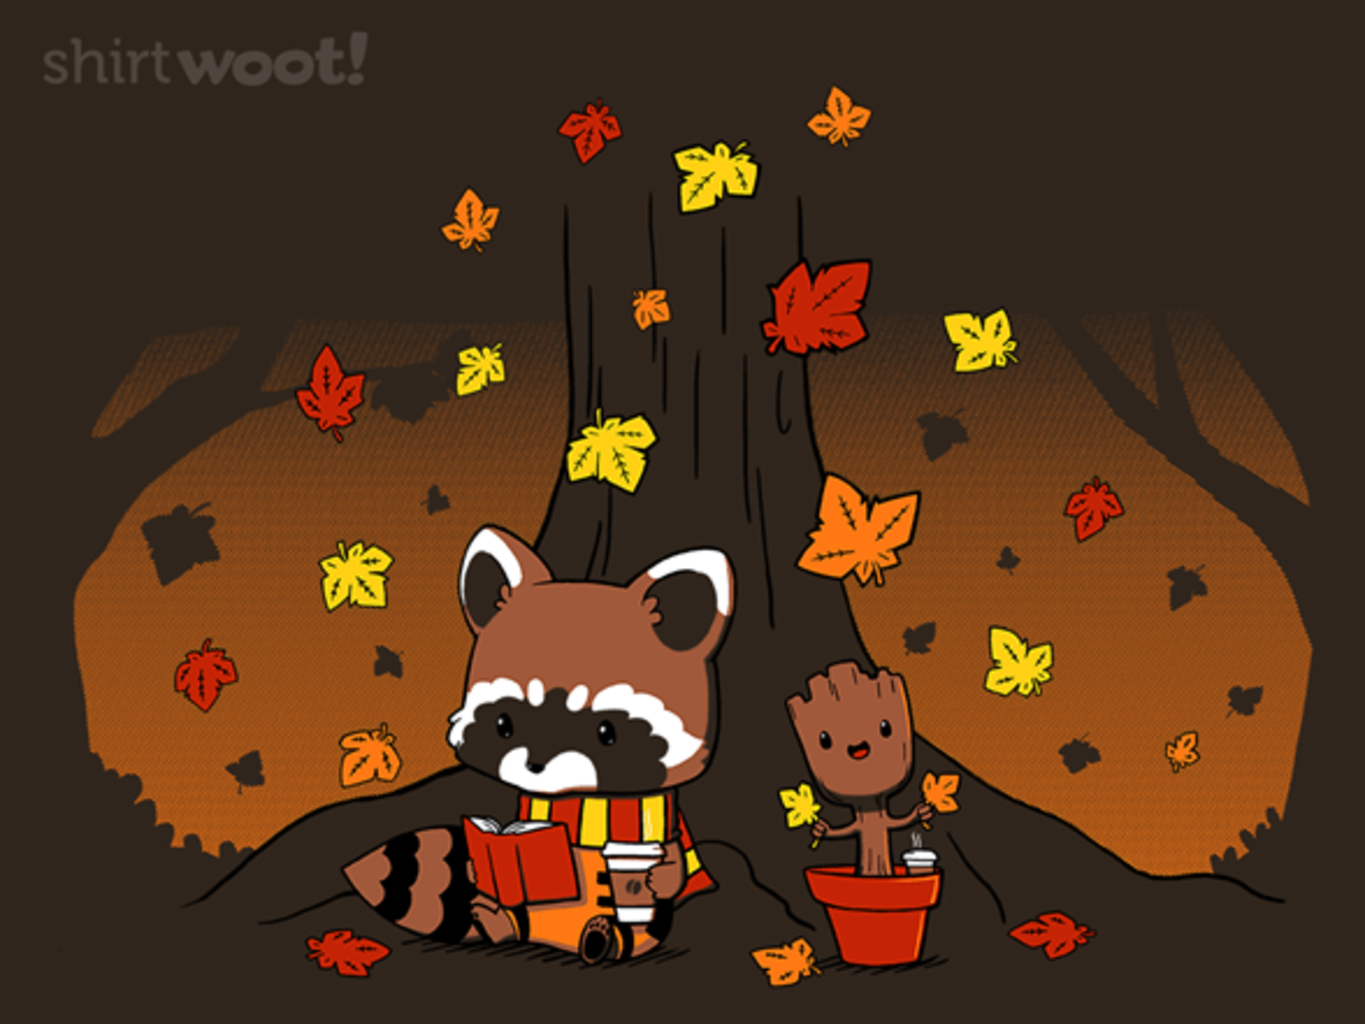 Woot!: I Have a Plan (for Fall)